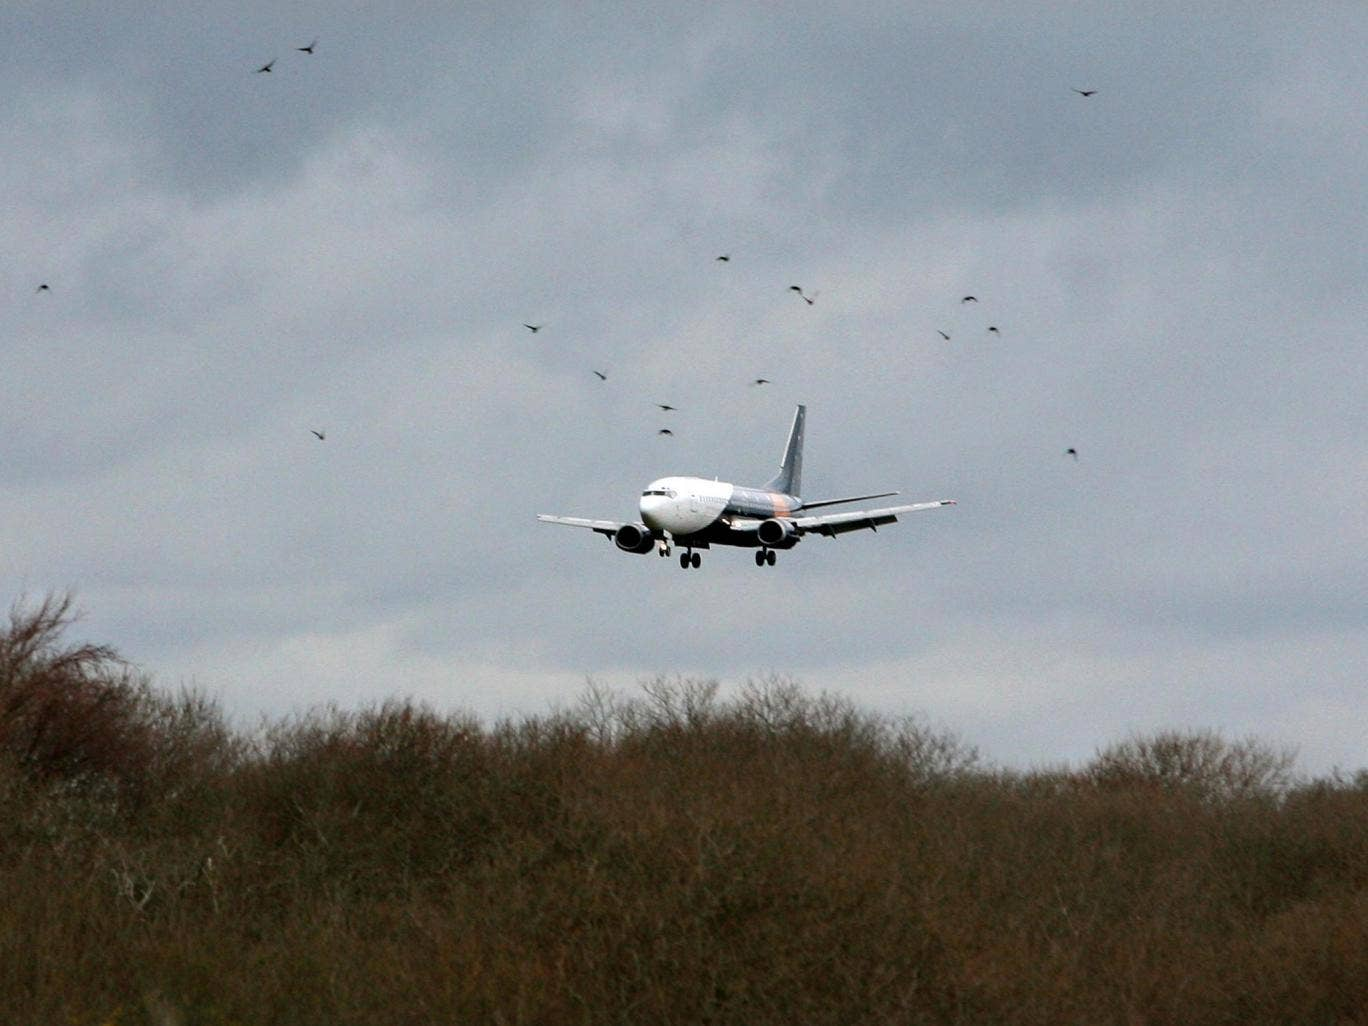 A Boeing 737 is given a test flight at Lydd airport in Kent